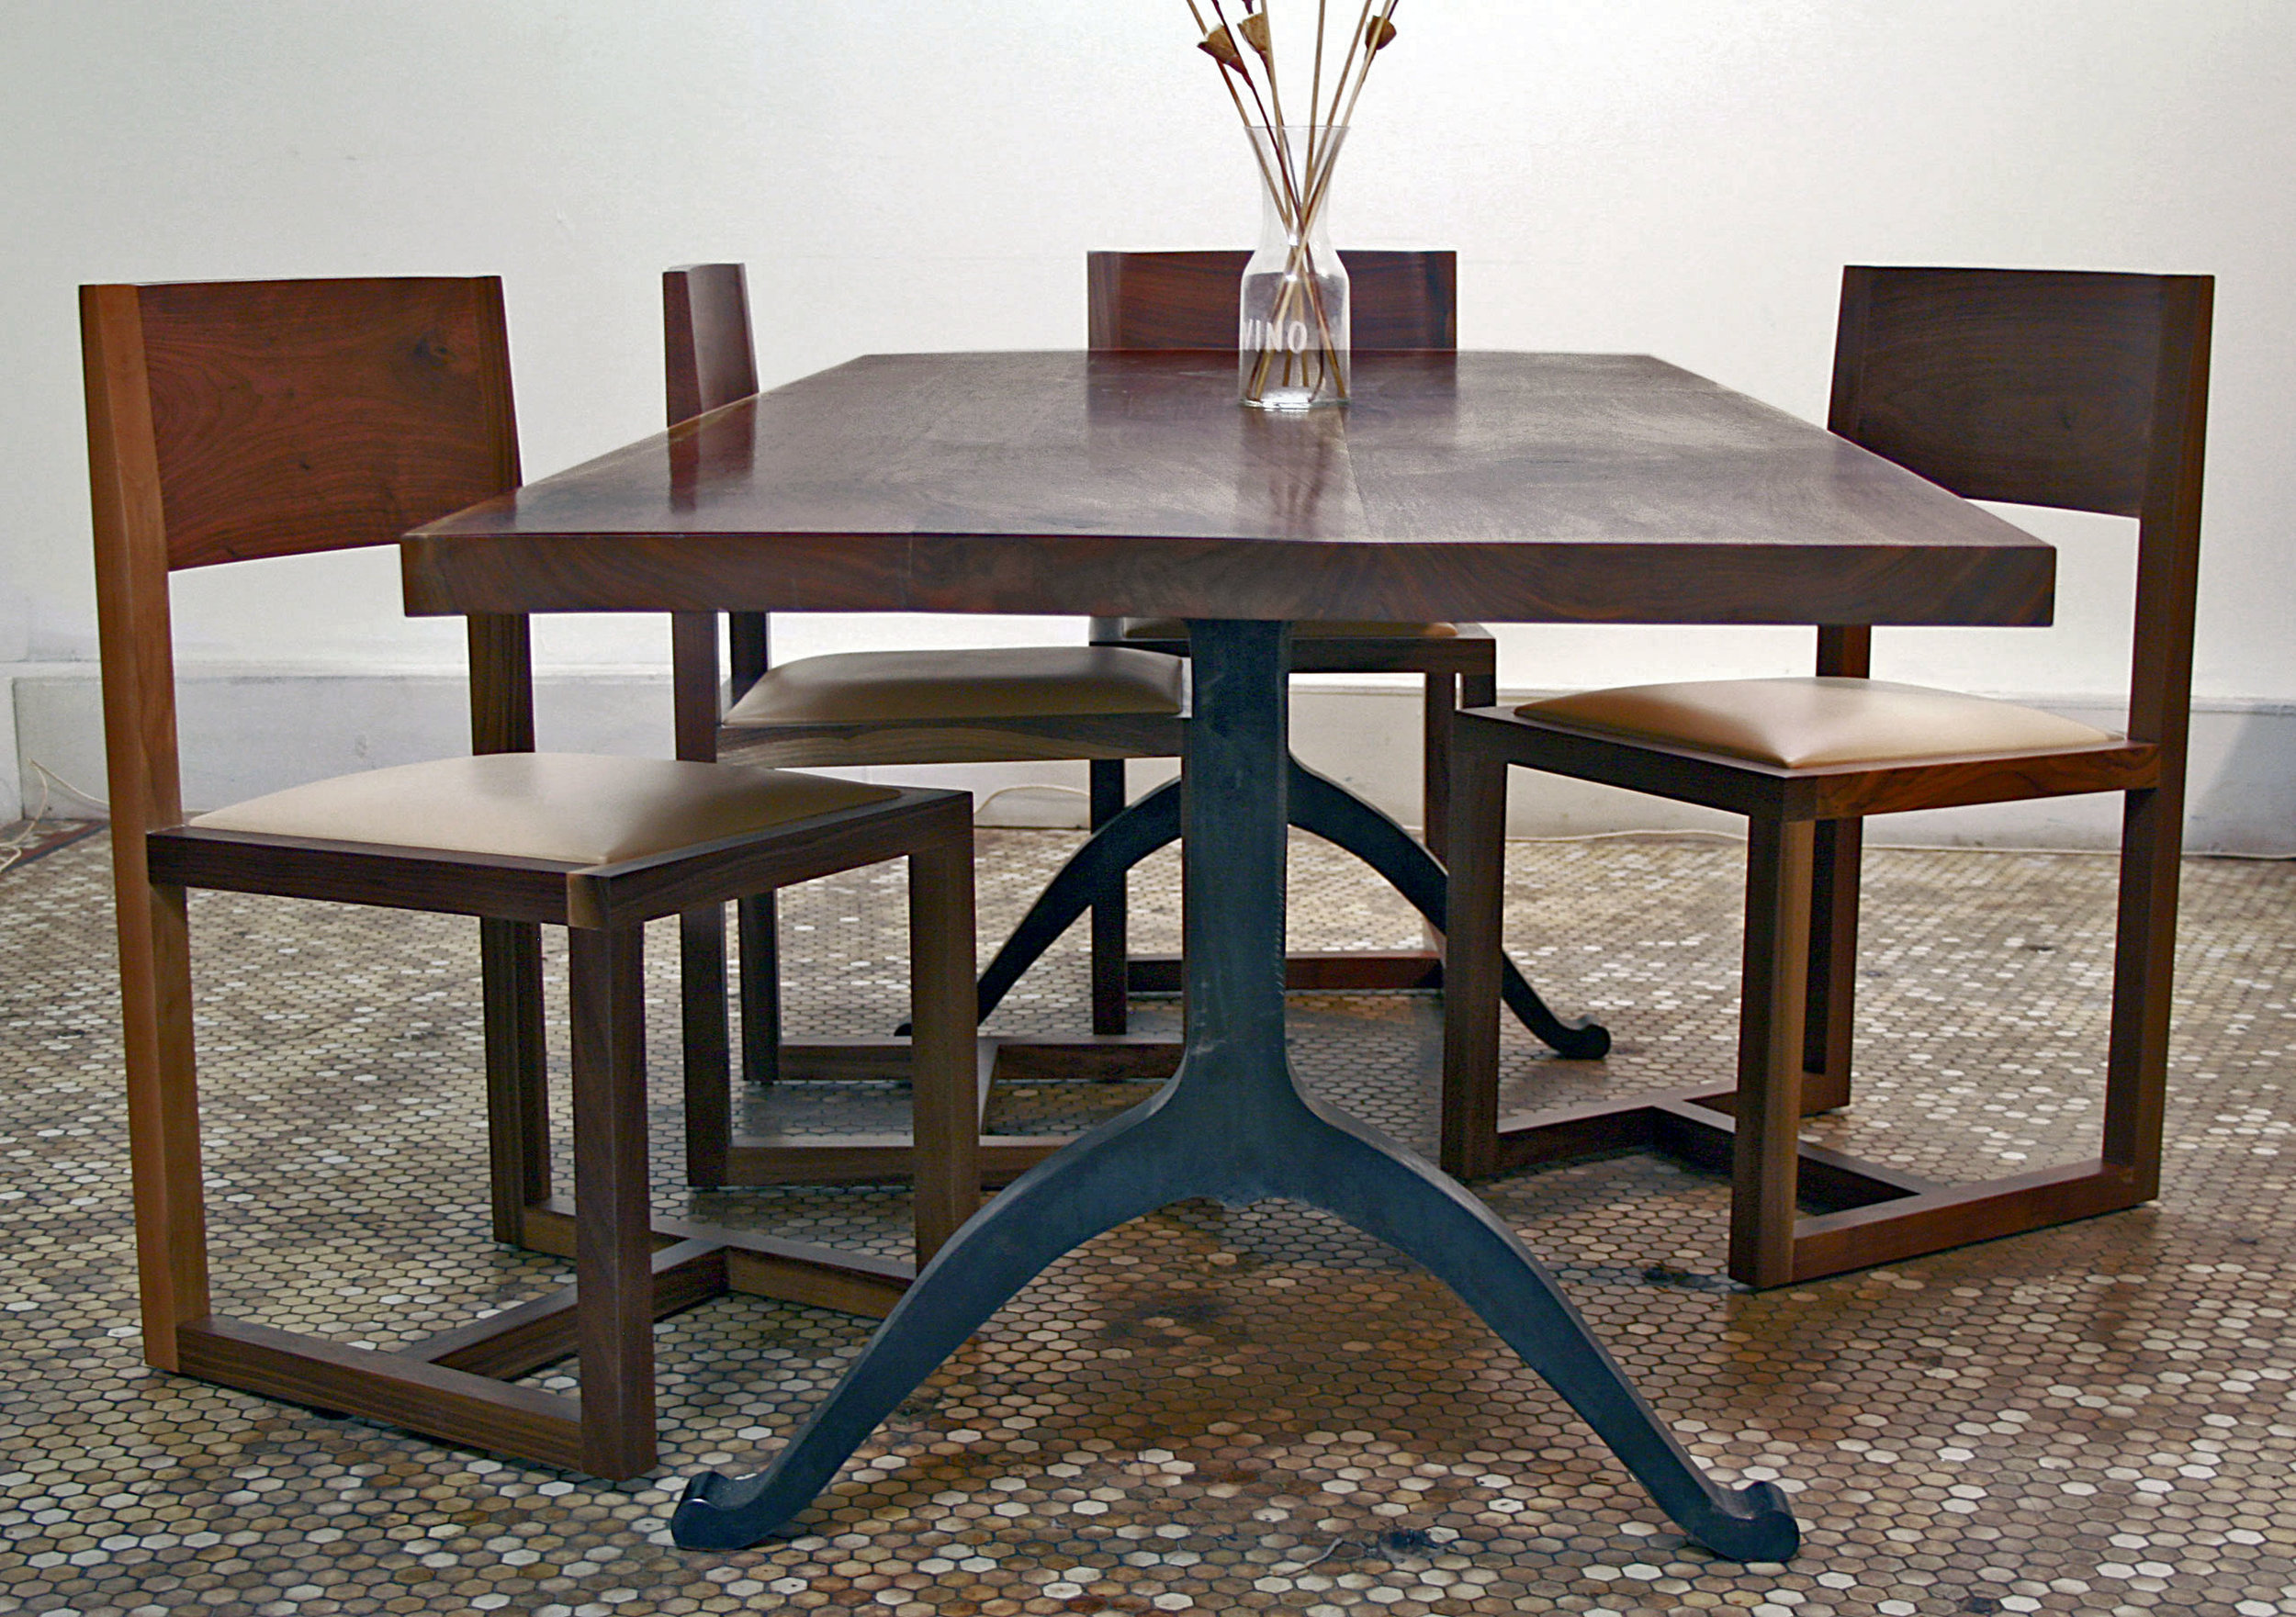 Communal Table with wishbone legs